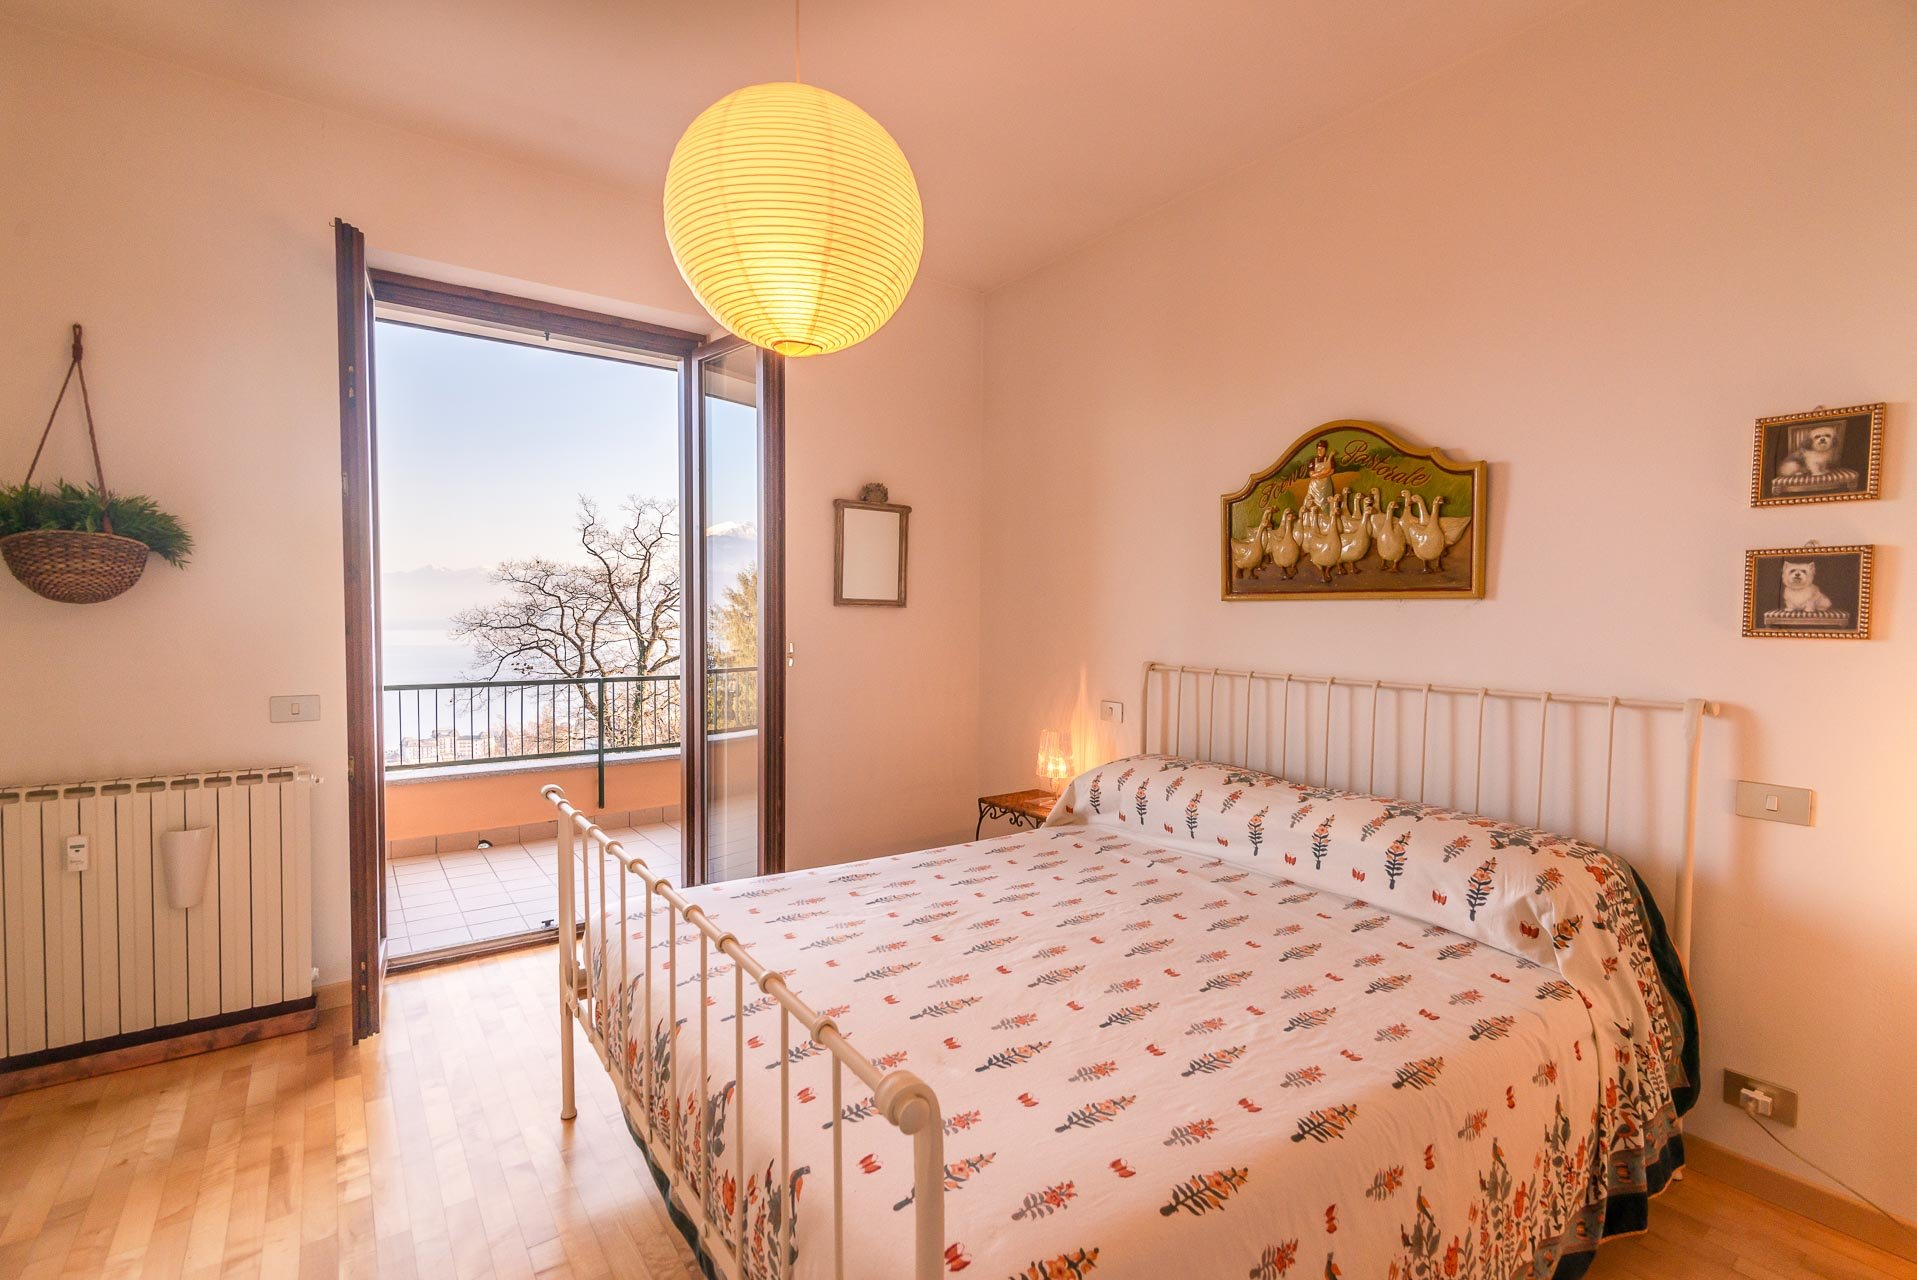 Apartment for sale in Stresa in a residence - master bedroom